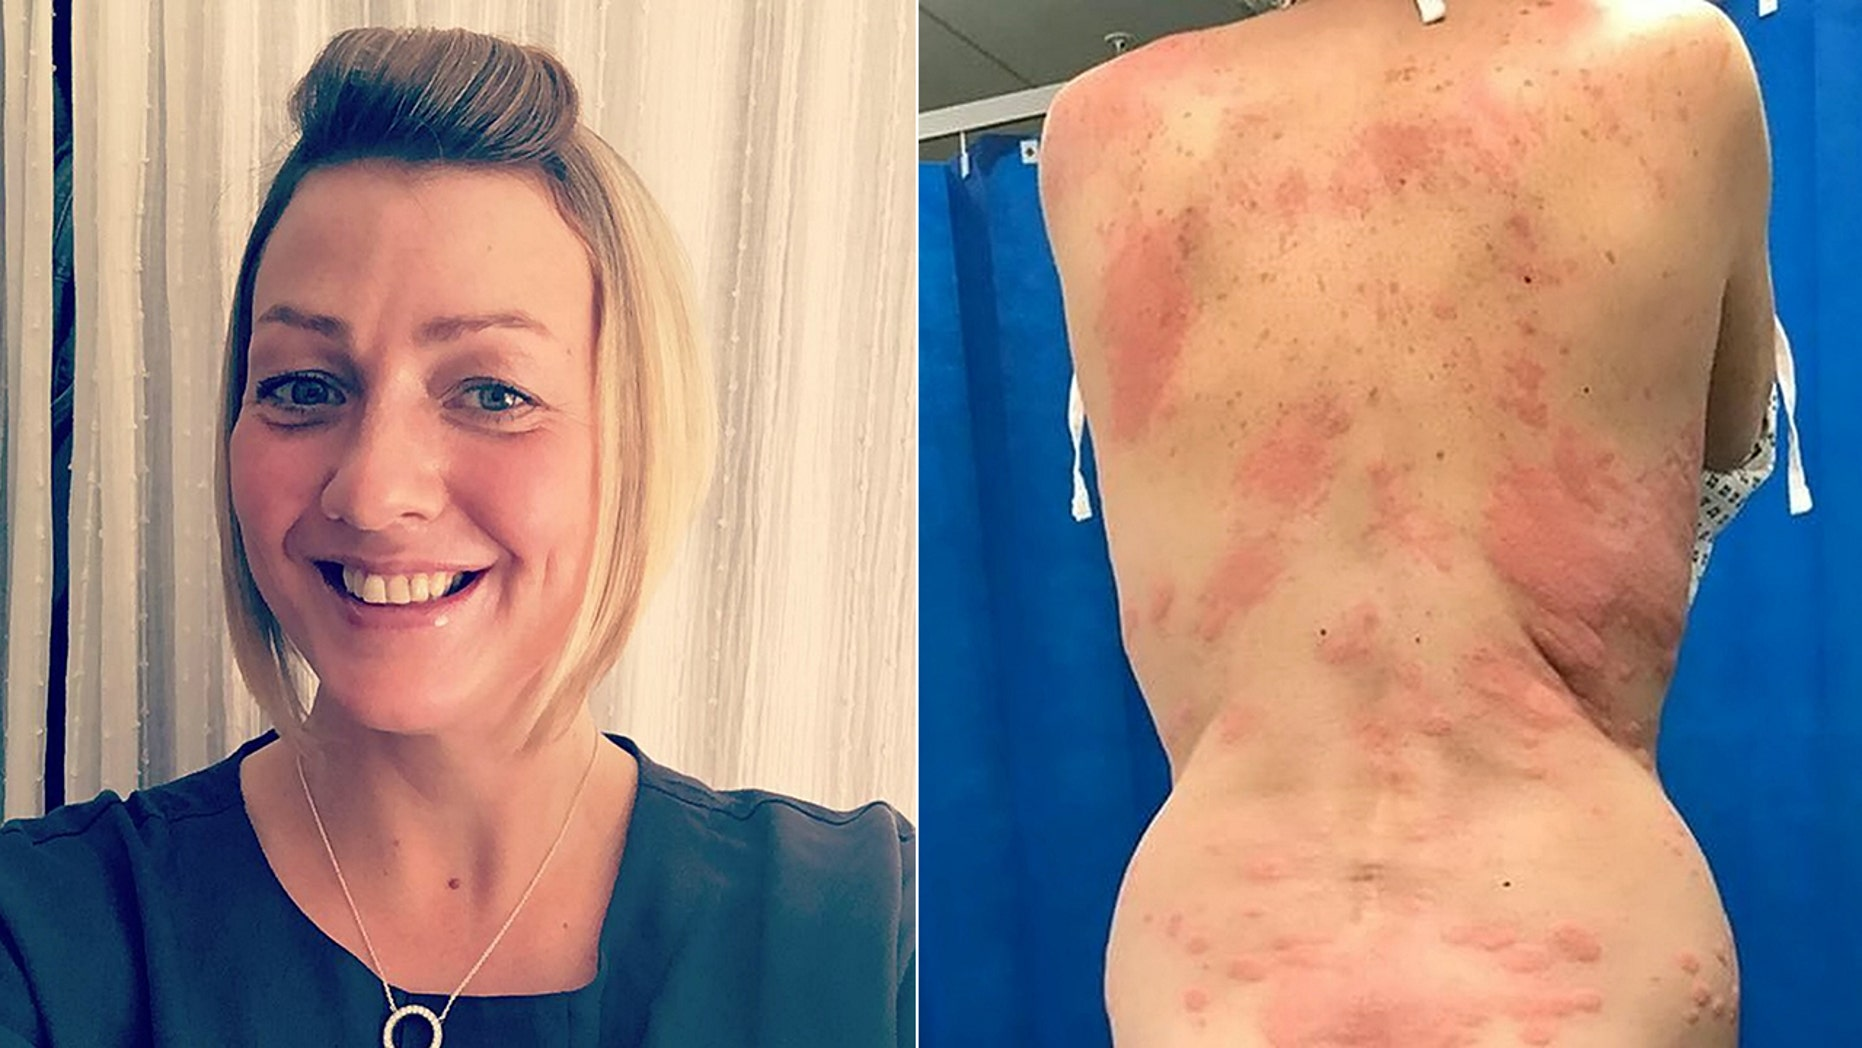 Lisa Santiago-Griggs, 42, said she developed the painful rash after using a vape for the first time.